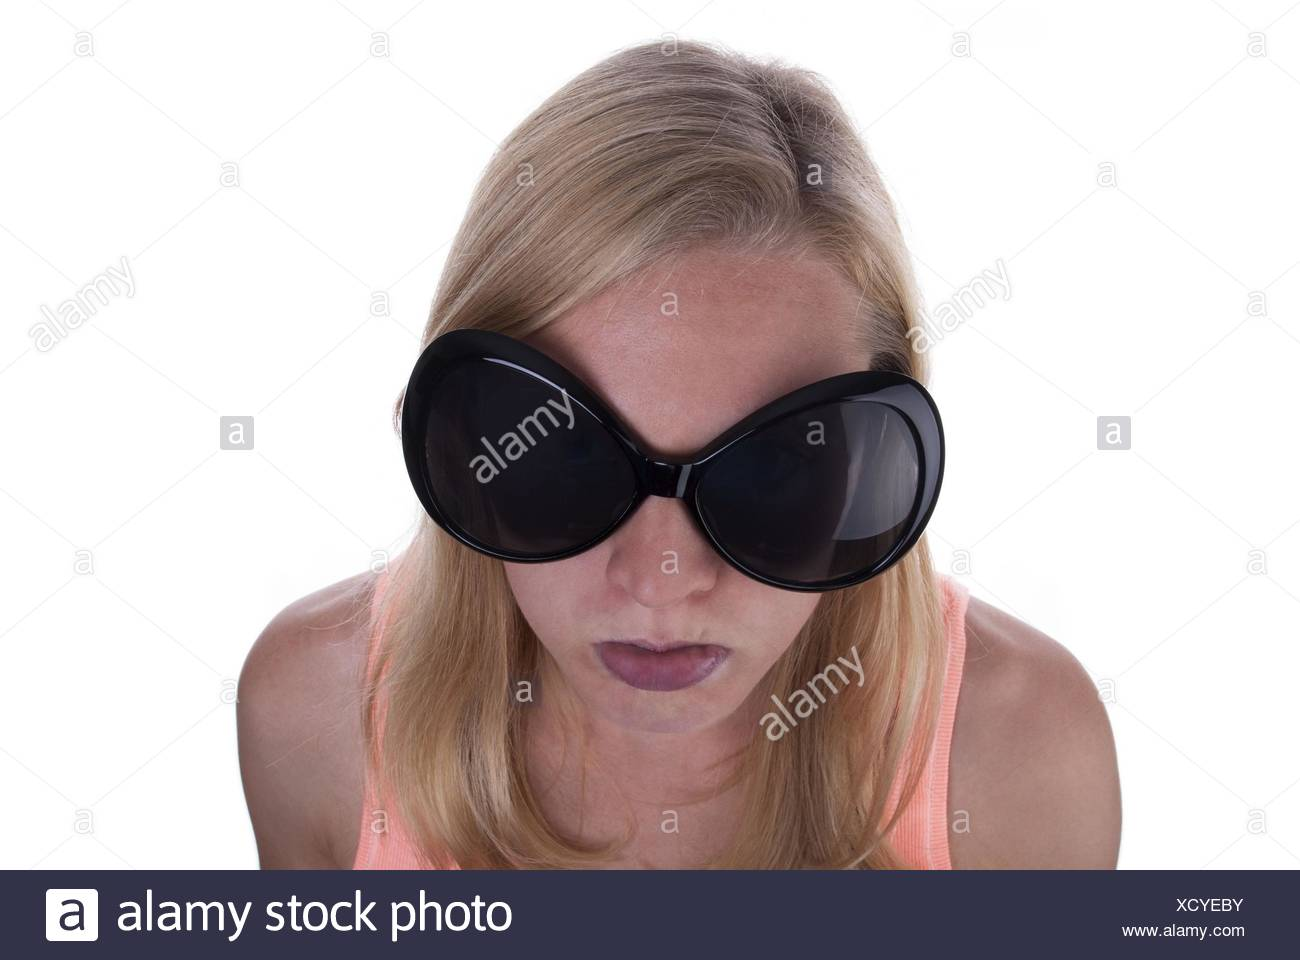 57648b3e8a1 A Young Blond Teen With Huge Sunglasses Sulking